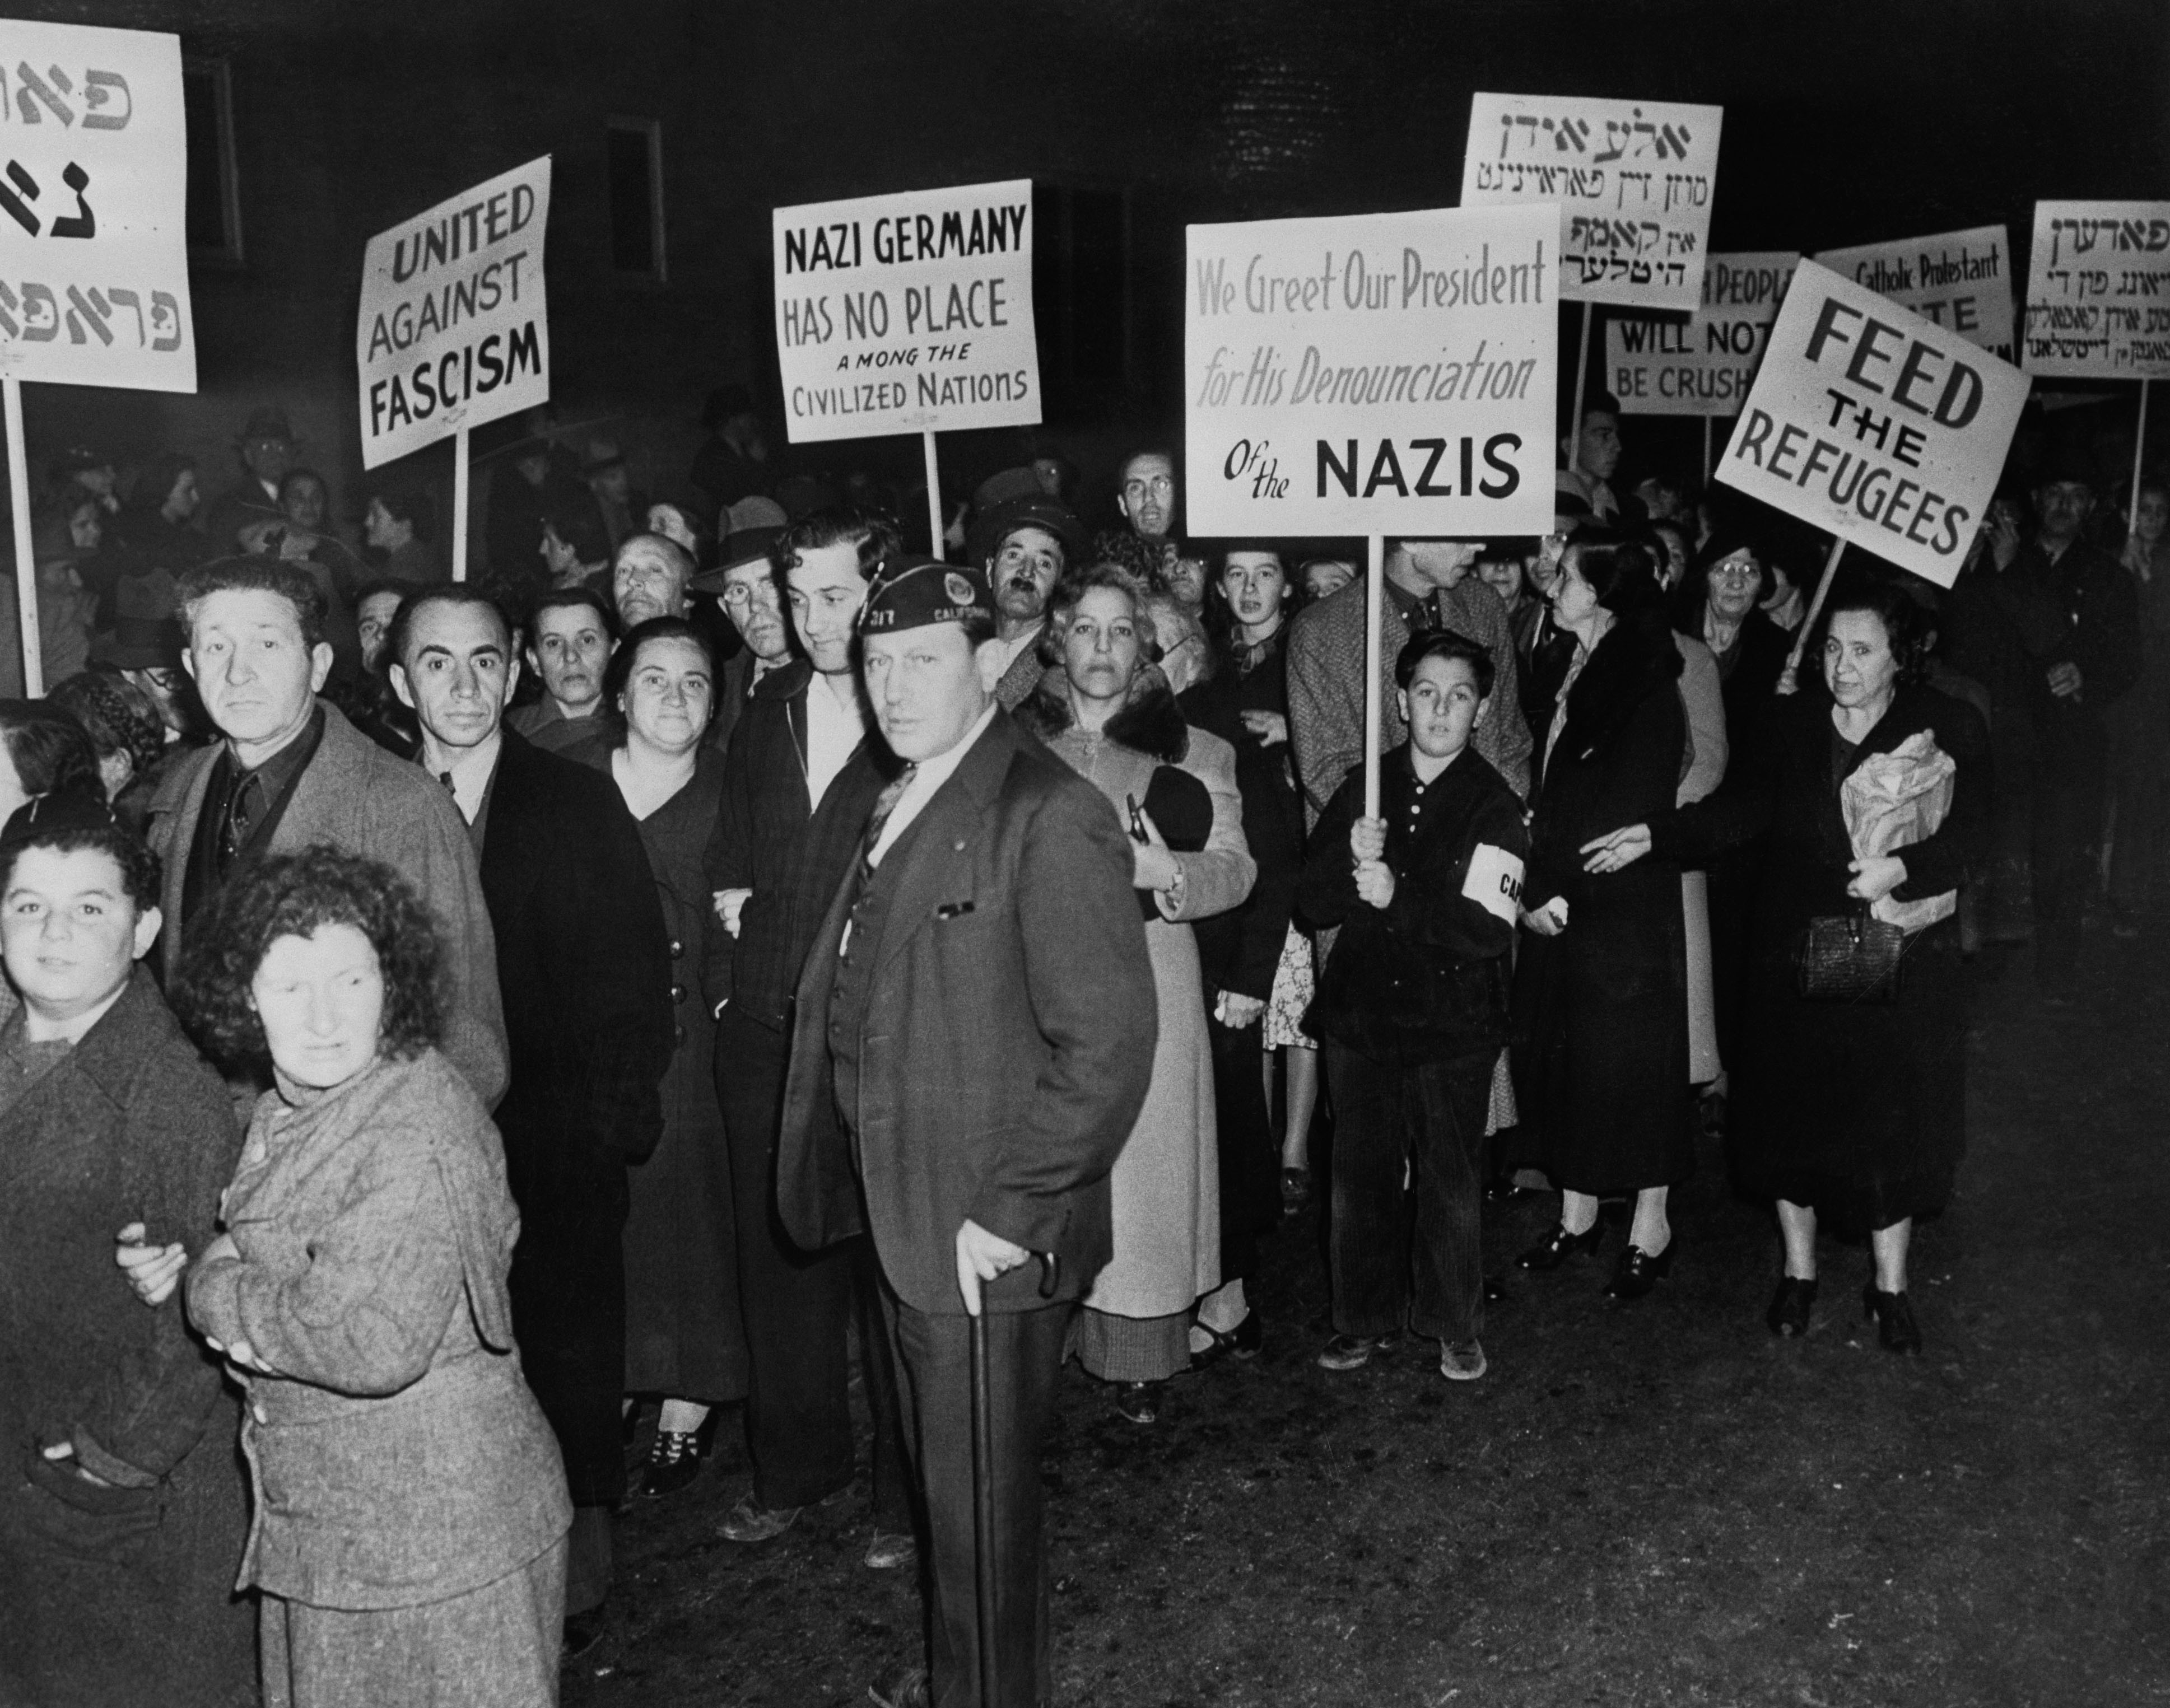 a history of anti semitism in nazi germany Nazi anti-semitism was derived from the hateful prejudices of its leaders, particularly adolf hitler - but it also had much older origins.